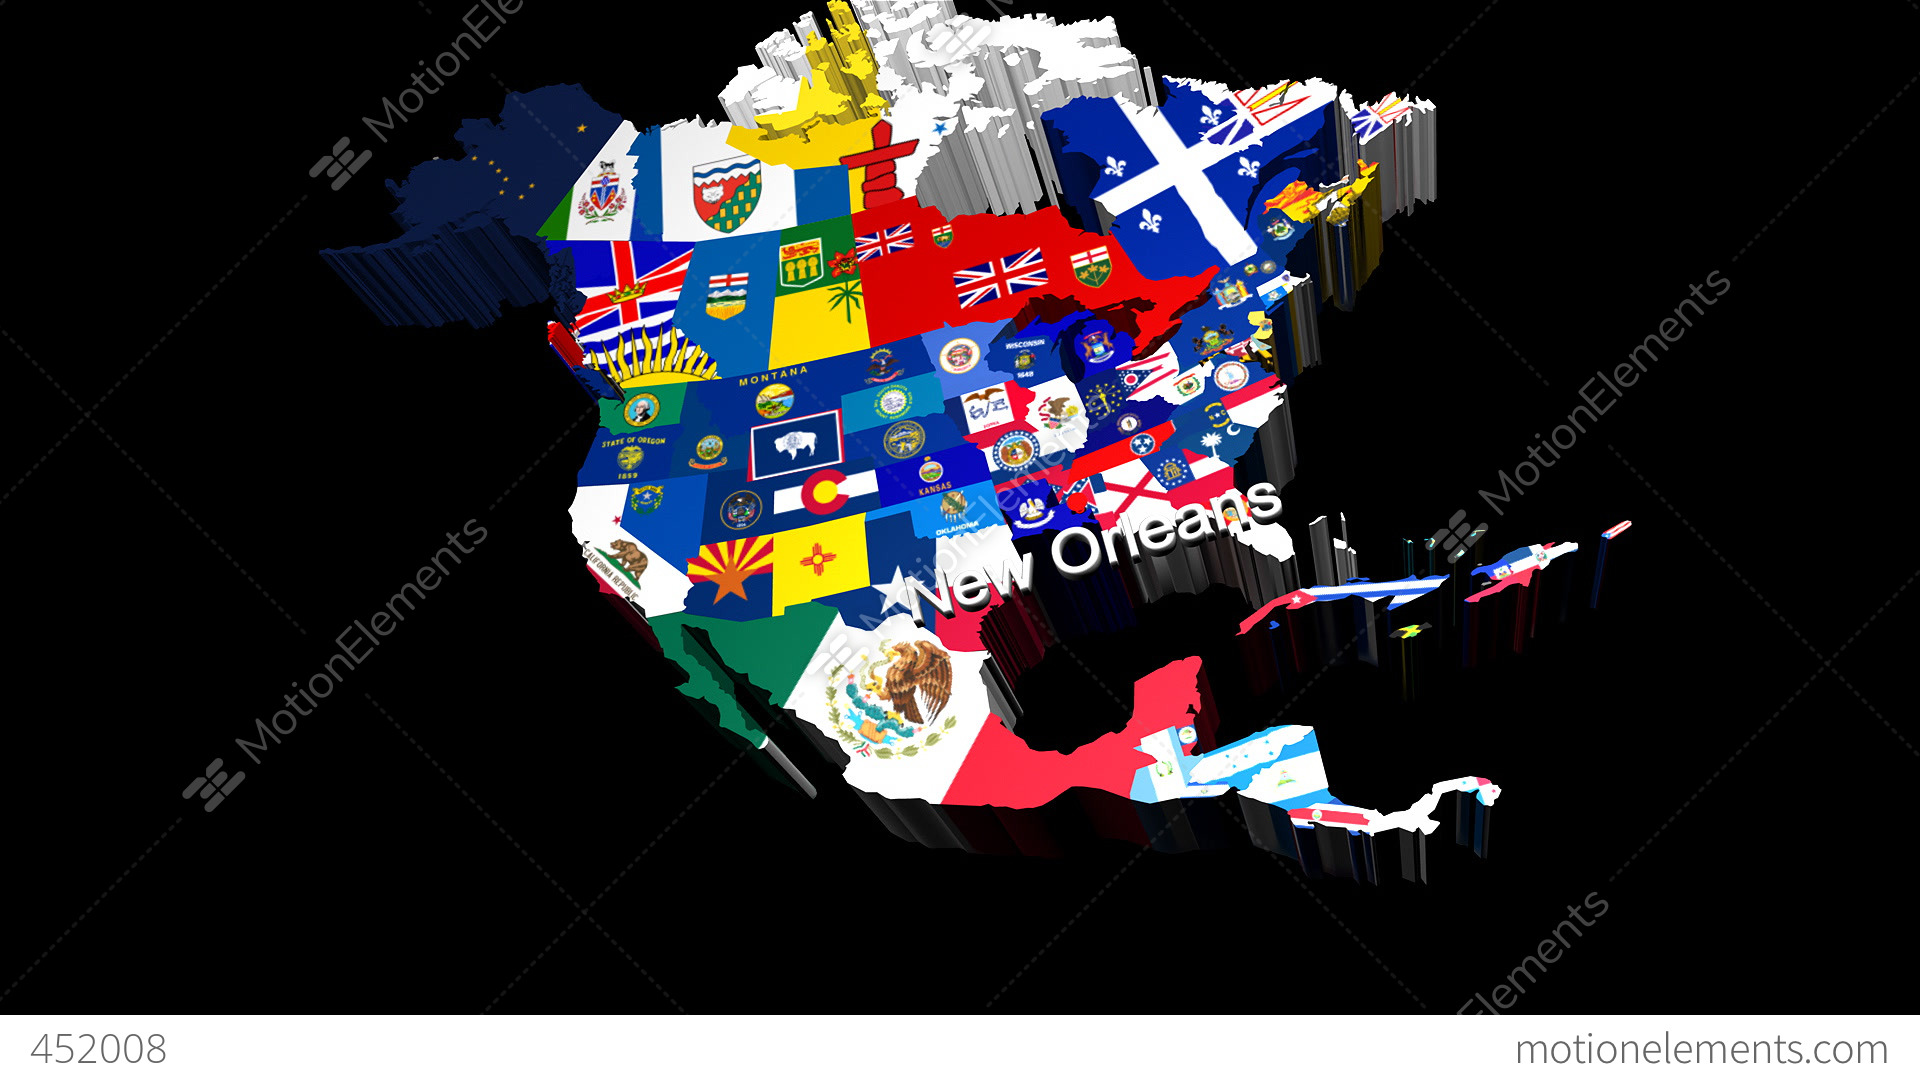 D USA Map With State Flags Zooming Into New Orleans Estoque Da - 3d map usa states